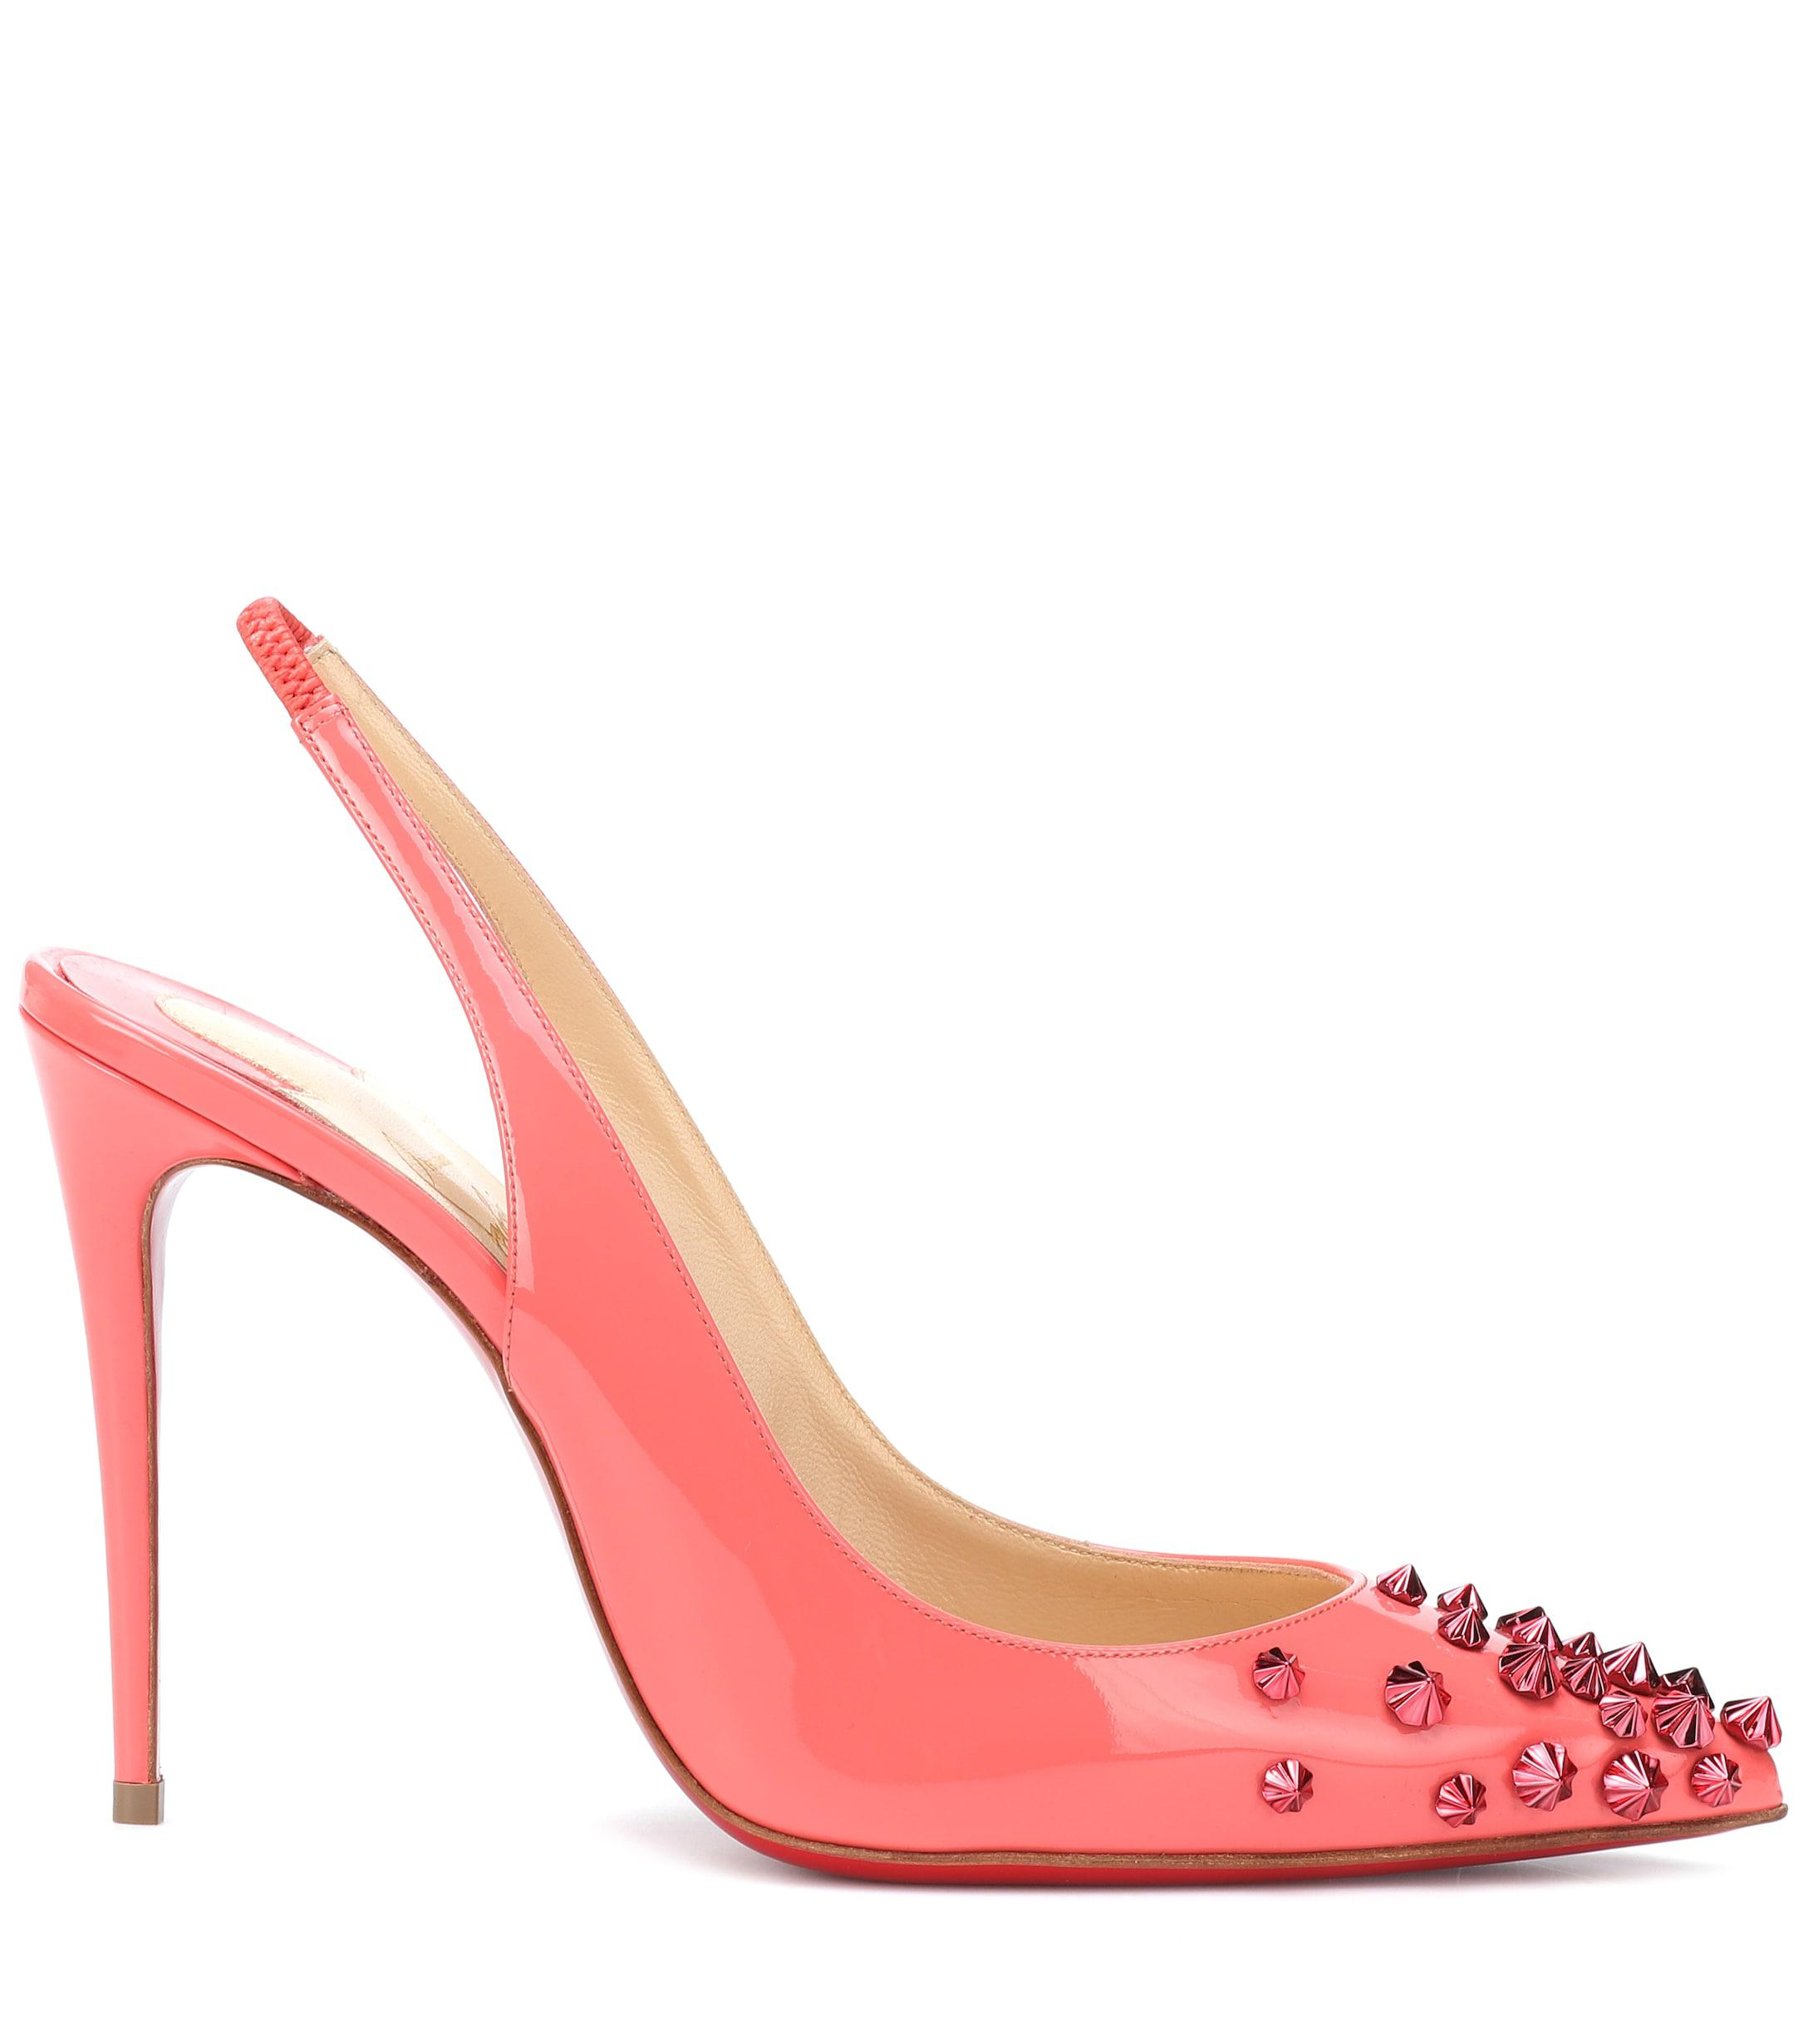 de2fd8cce905 Lyst - Christian Louboutin Drama Sling 100 Patent Leather Pumps in Pink -  Save 5%